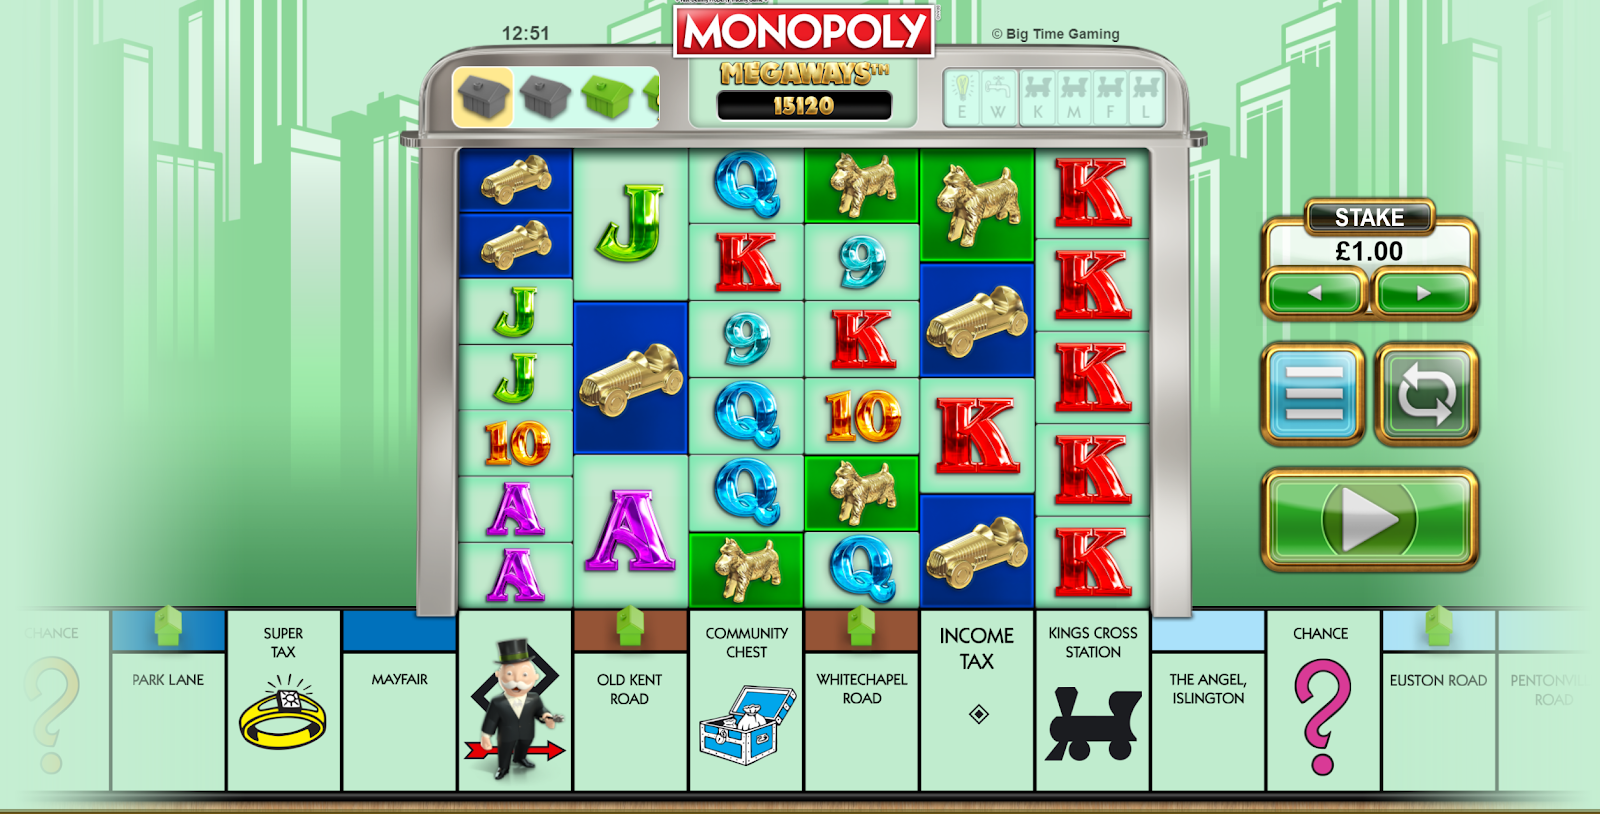 Monopoly Megaways is a video slot that looks like Monopoly